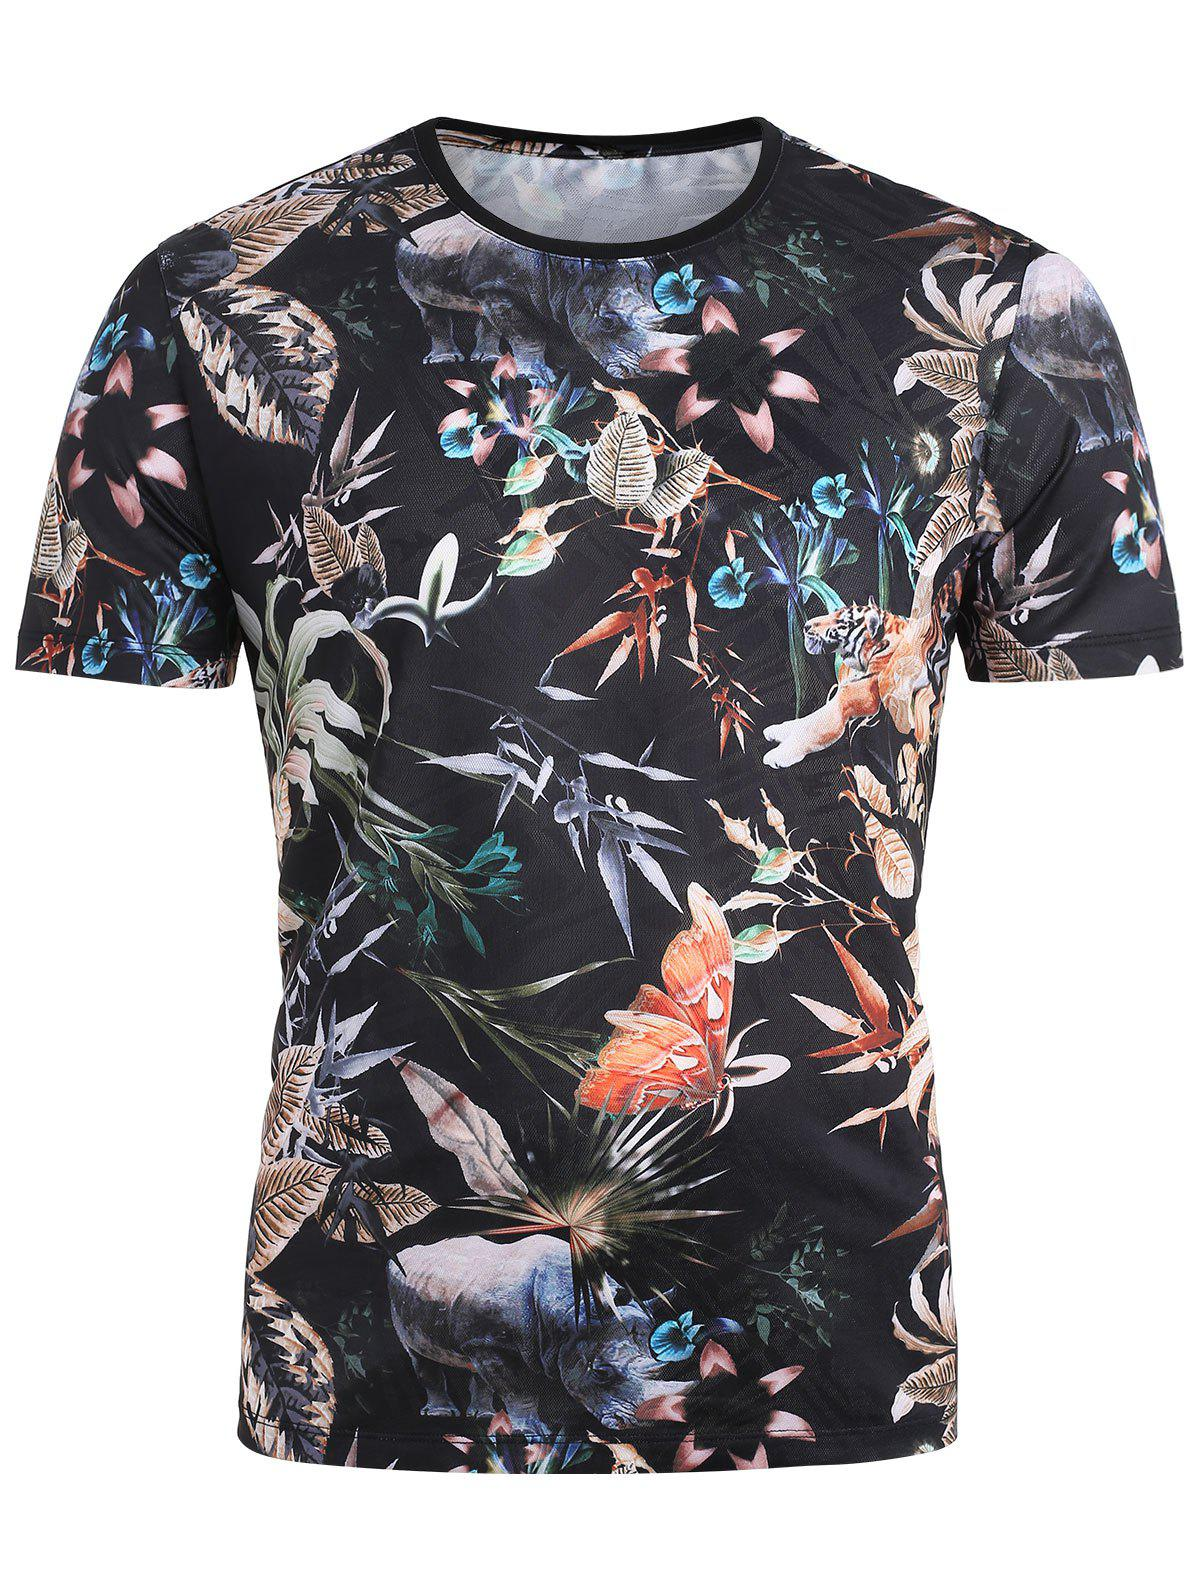 Trendy Rainforest Plants and Animals Printed Breathable T-shirt